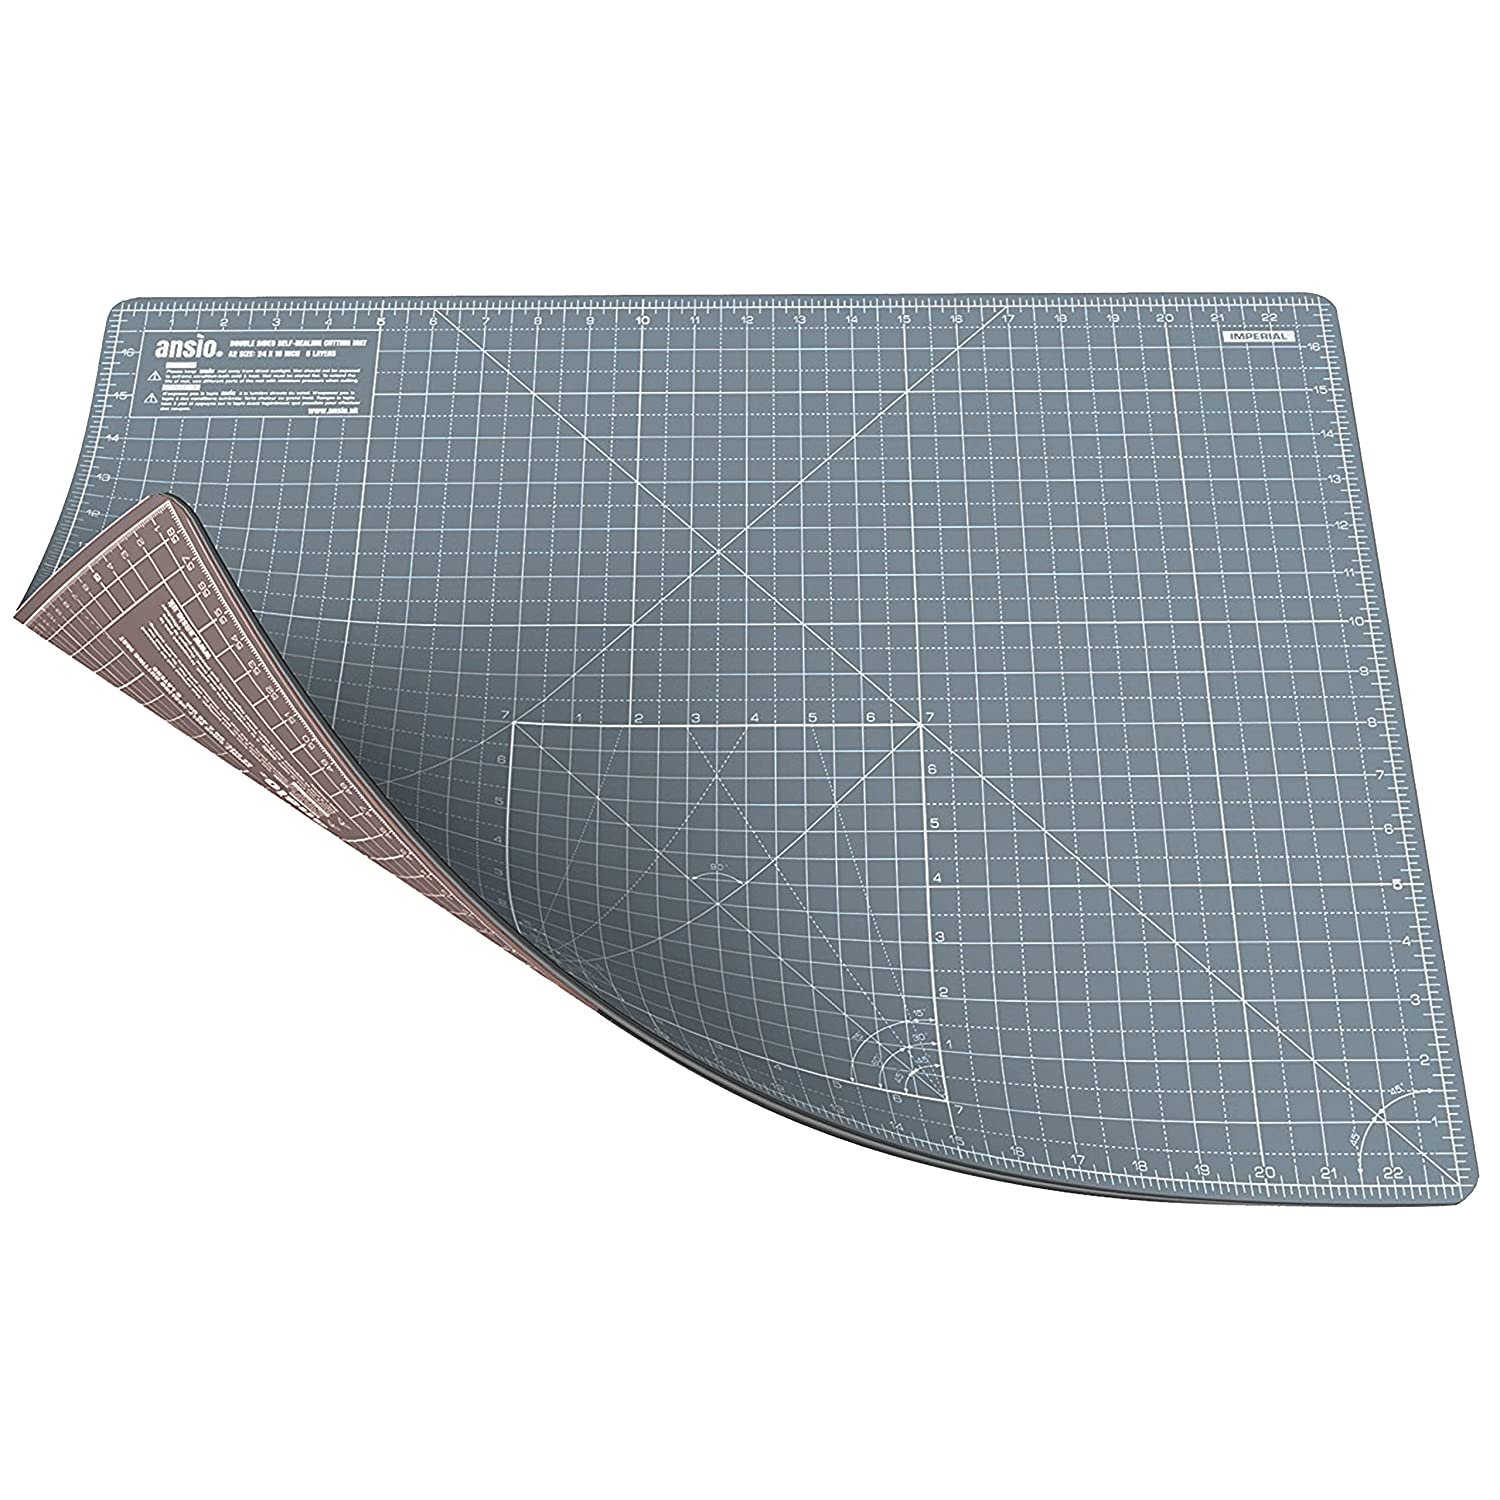 ANSIO A0 Double Sided Self Healing 5 Layers Cutting Mat Imperial/Metric 46 Inch x 33.5 Inch / 118cm x 86cm - Brown/Grey